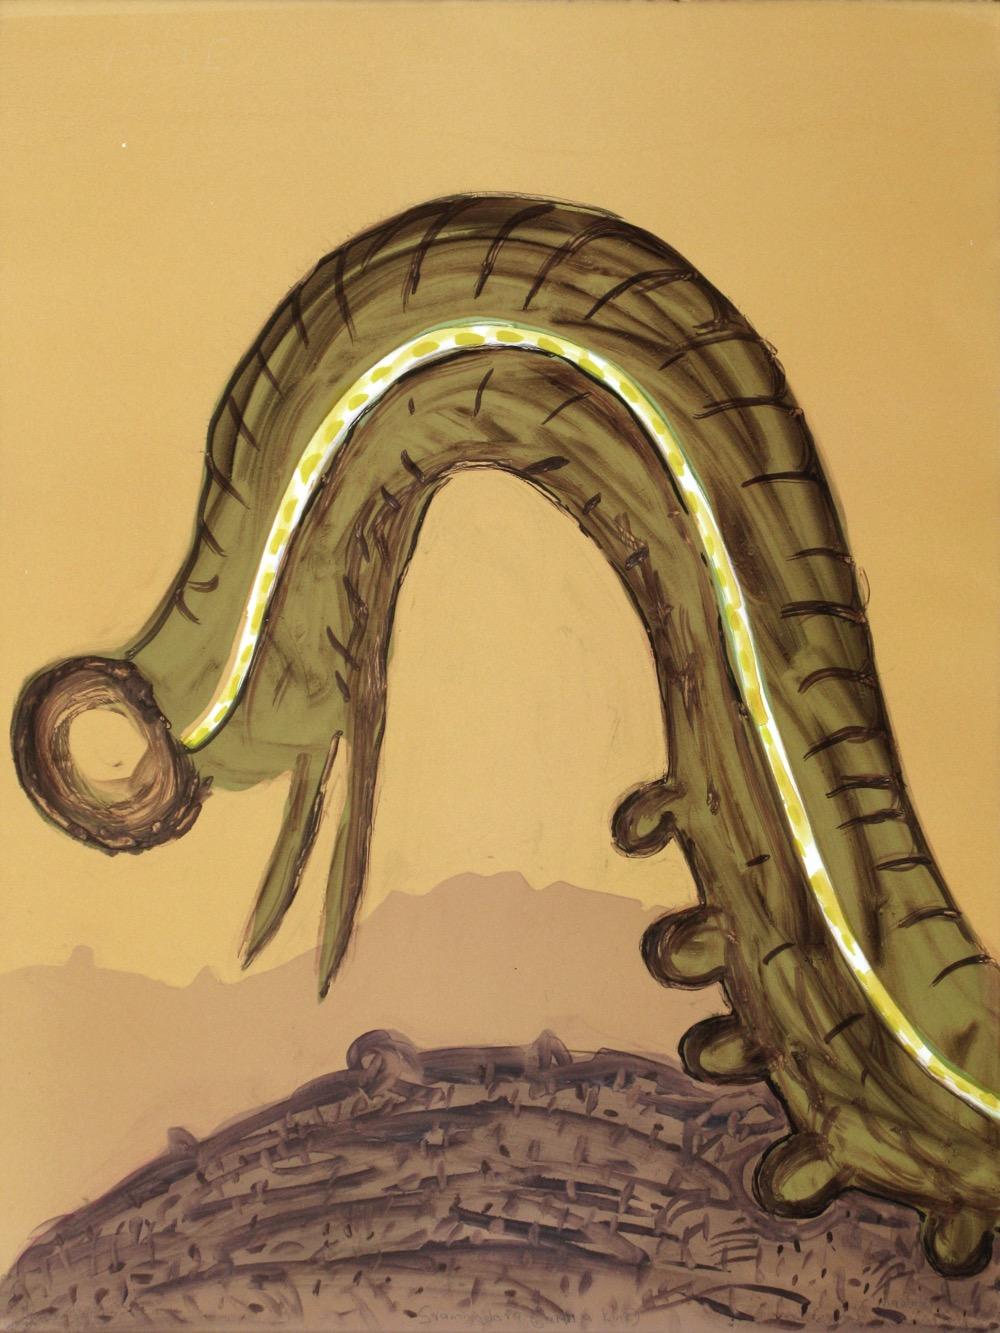 A large caterpillar moving into the image frame with a vast landscape behind it.